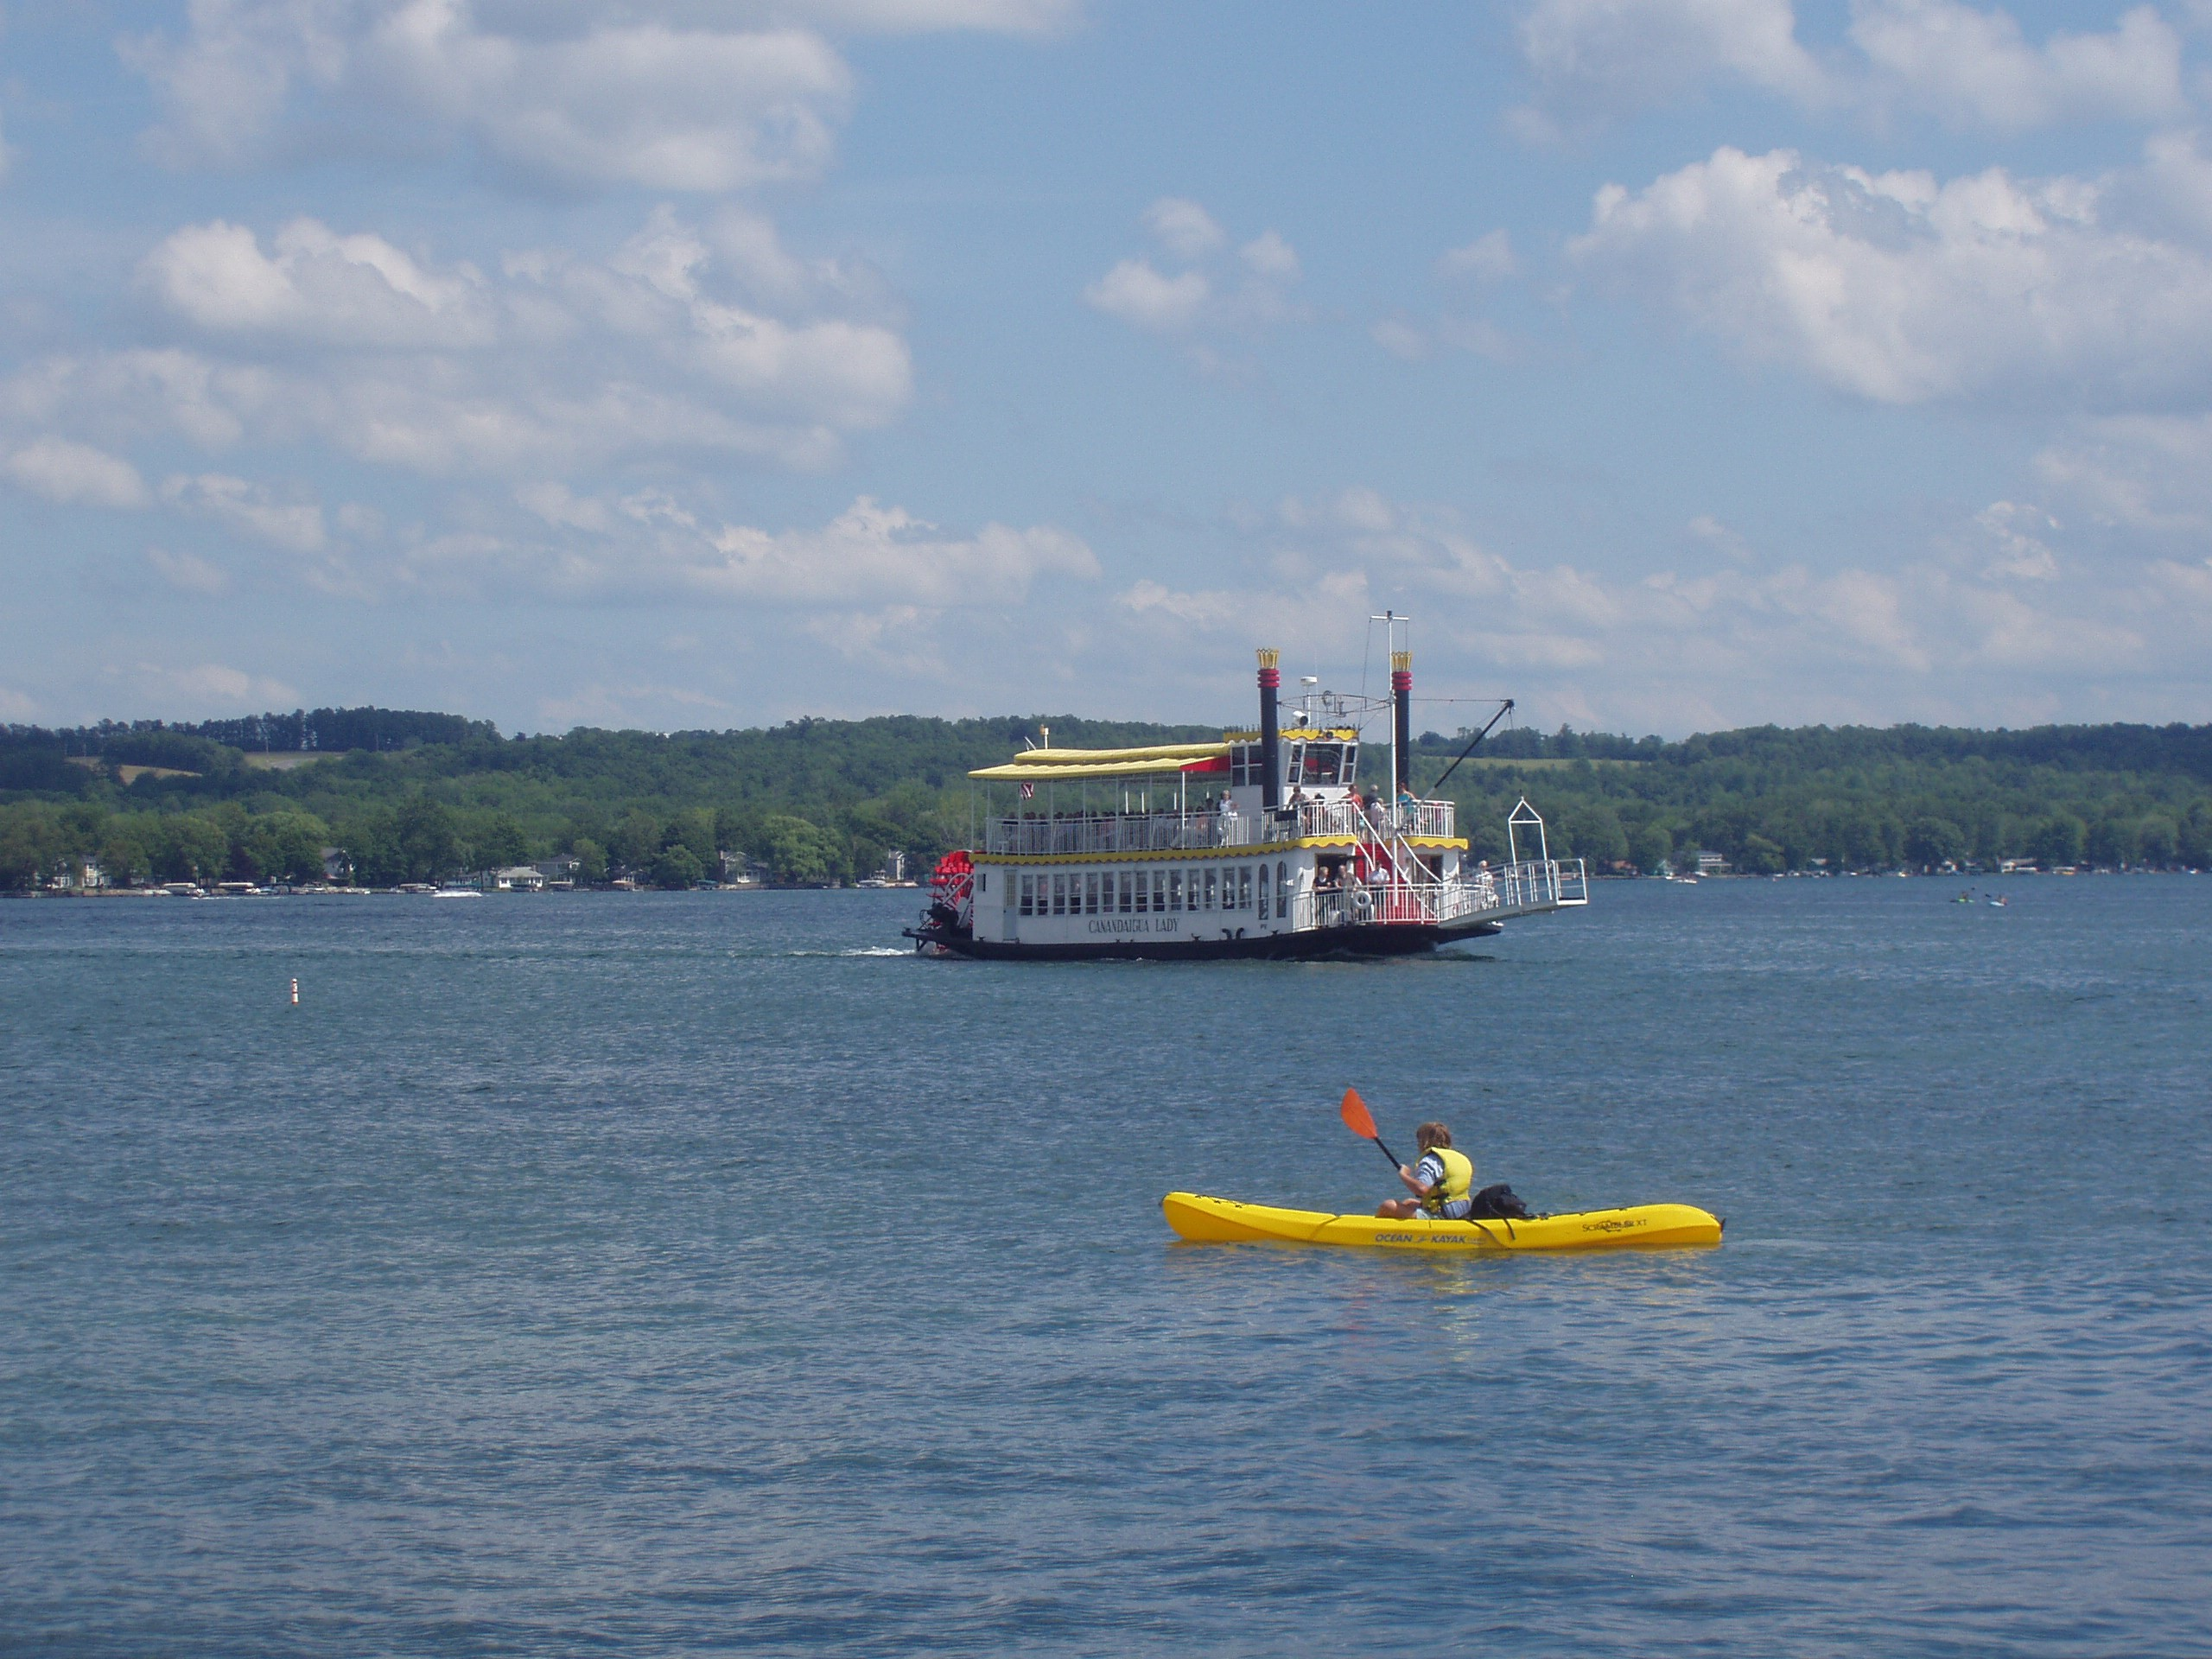 Kayaker and Canandaigua Lady